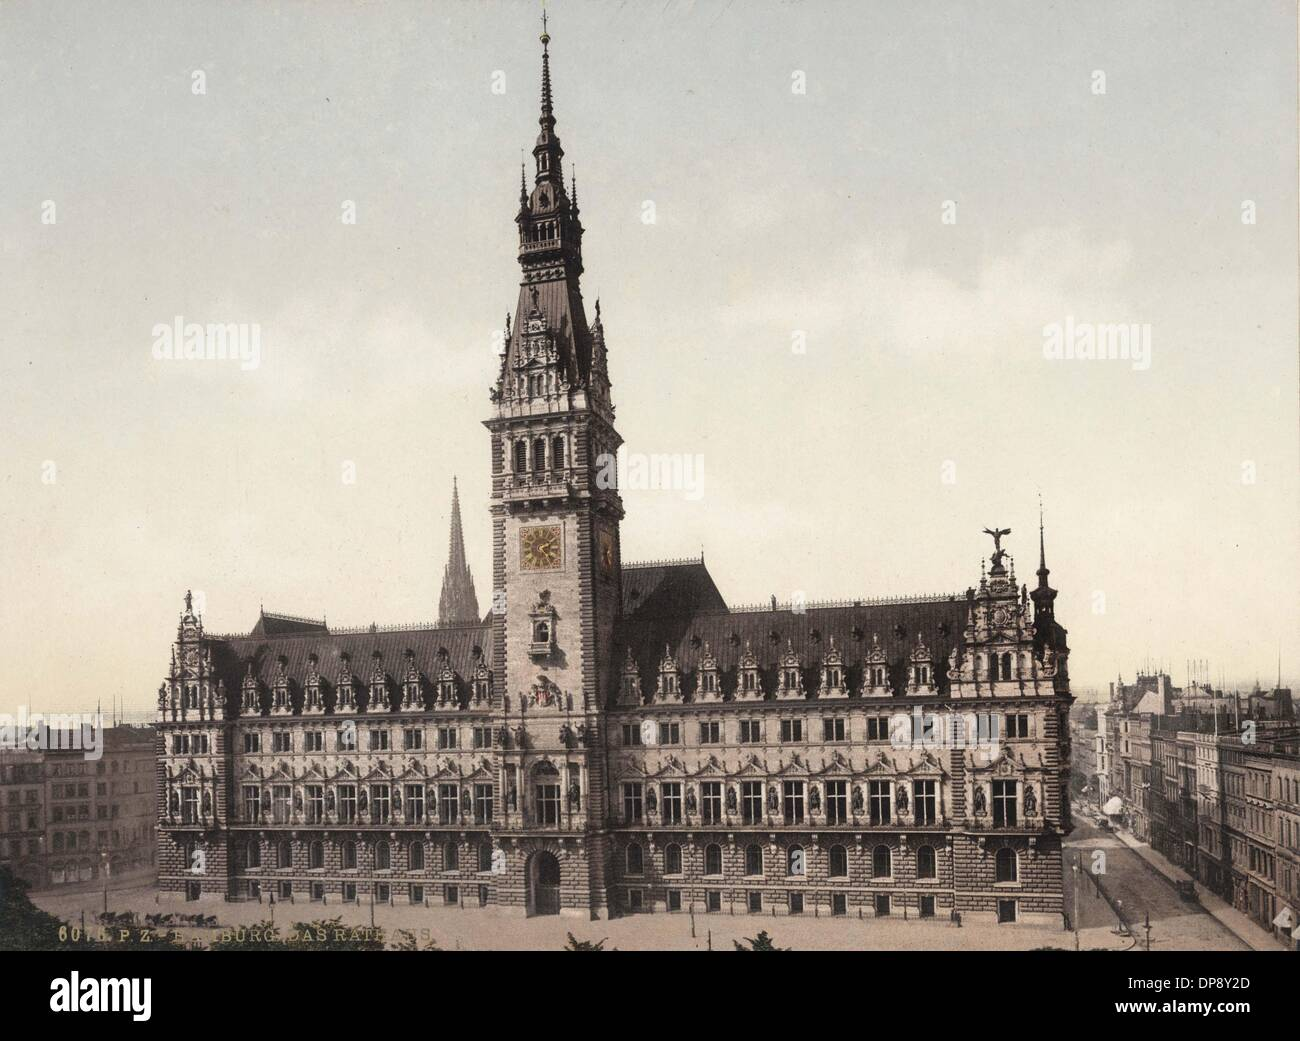 The historical photograph from around 1900 shows the town hall and market square in Hamburg.  Photo: Collection Sauer - Stock Image